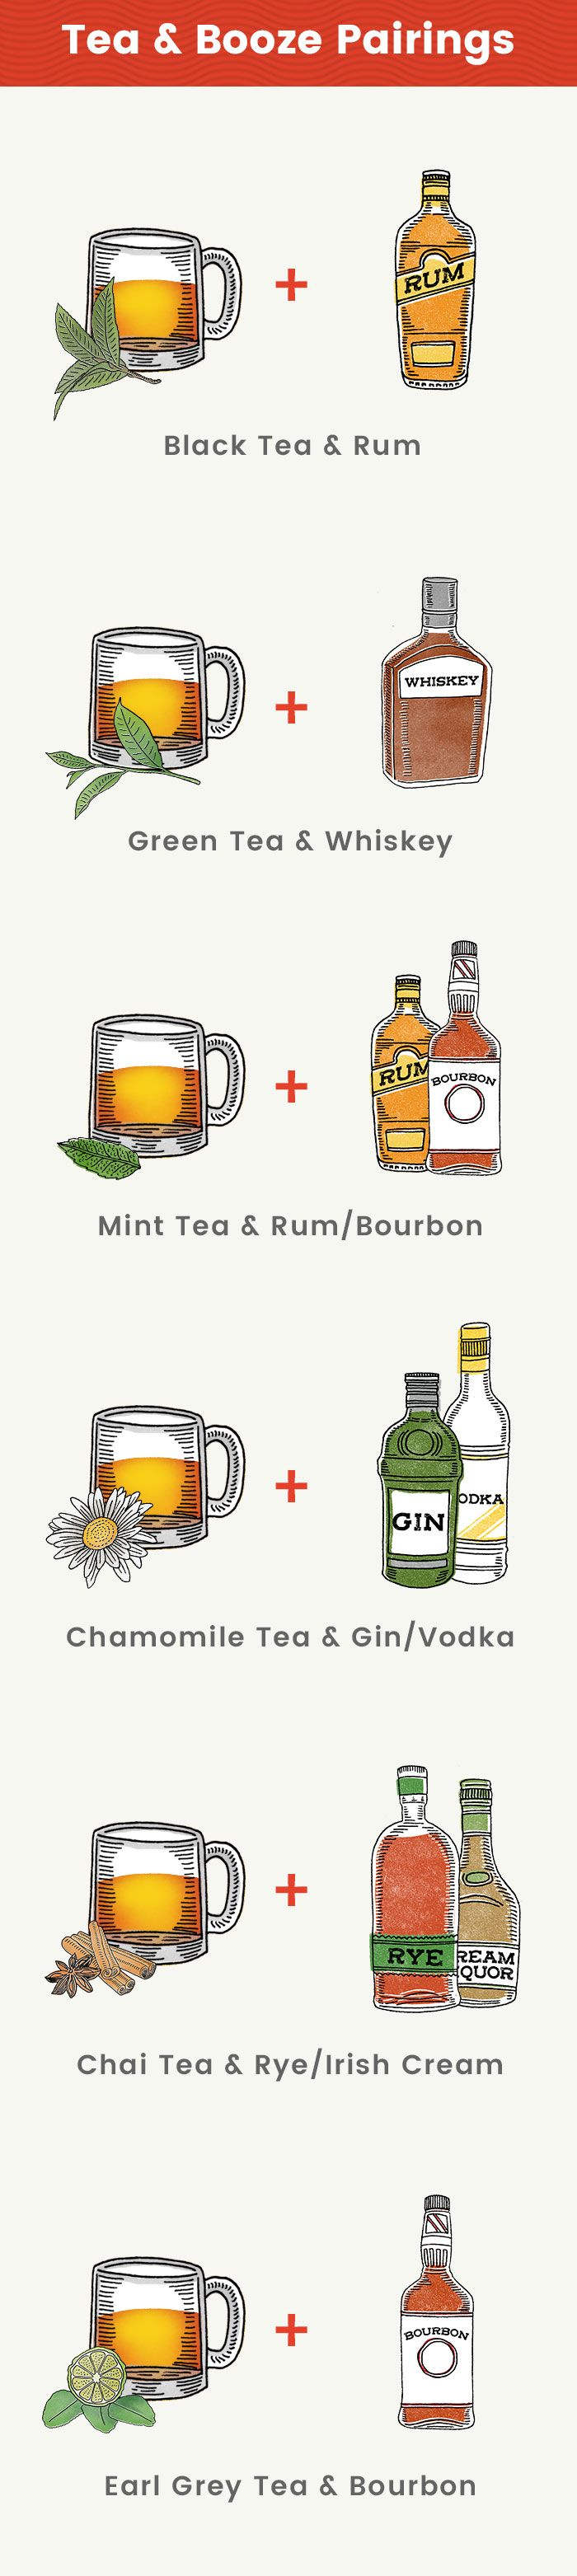 To help spark your cocktailian creativity, we tried spiking six classic teas with liquor to find out which pairings were best. Here are our favorite combinations.